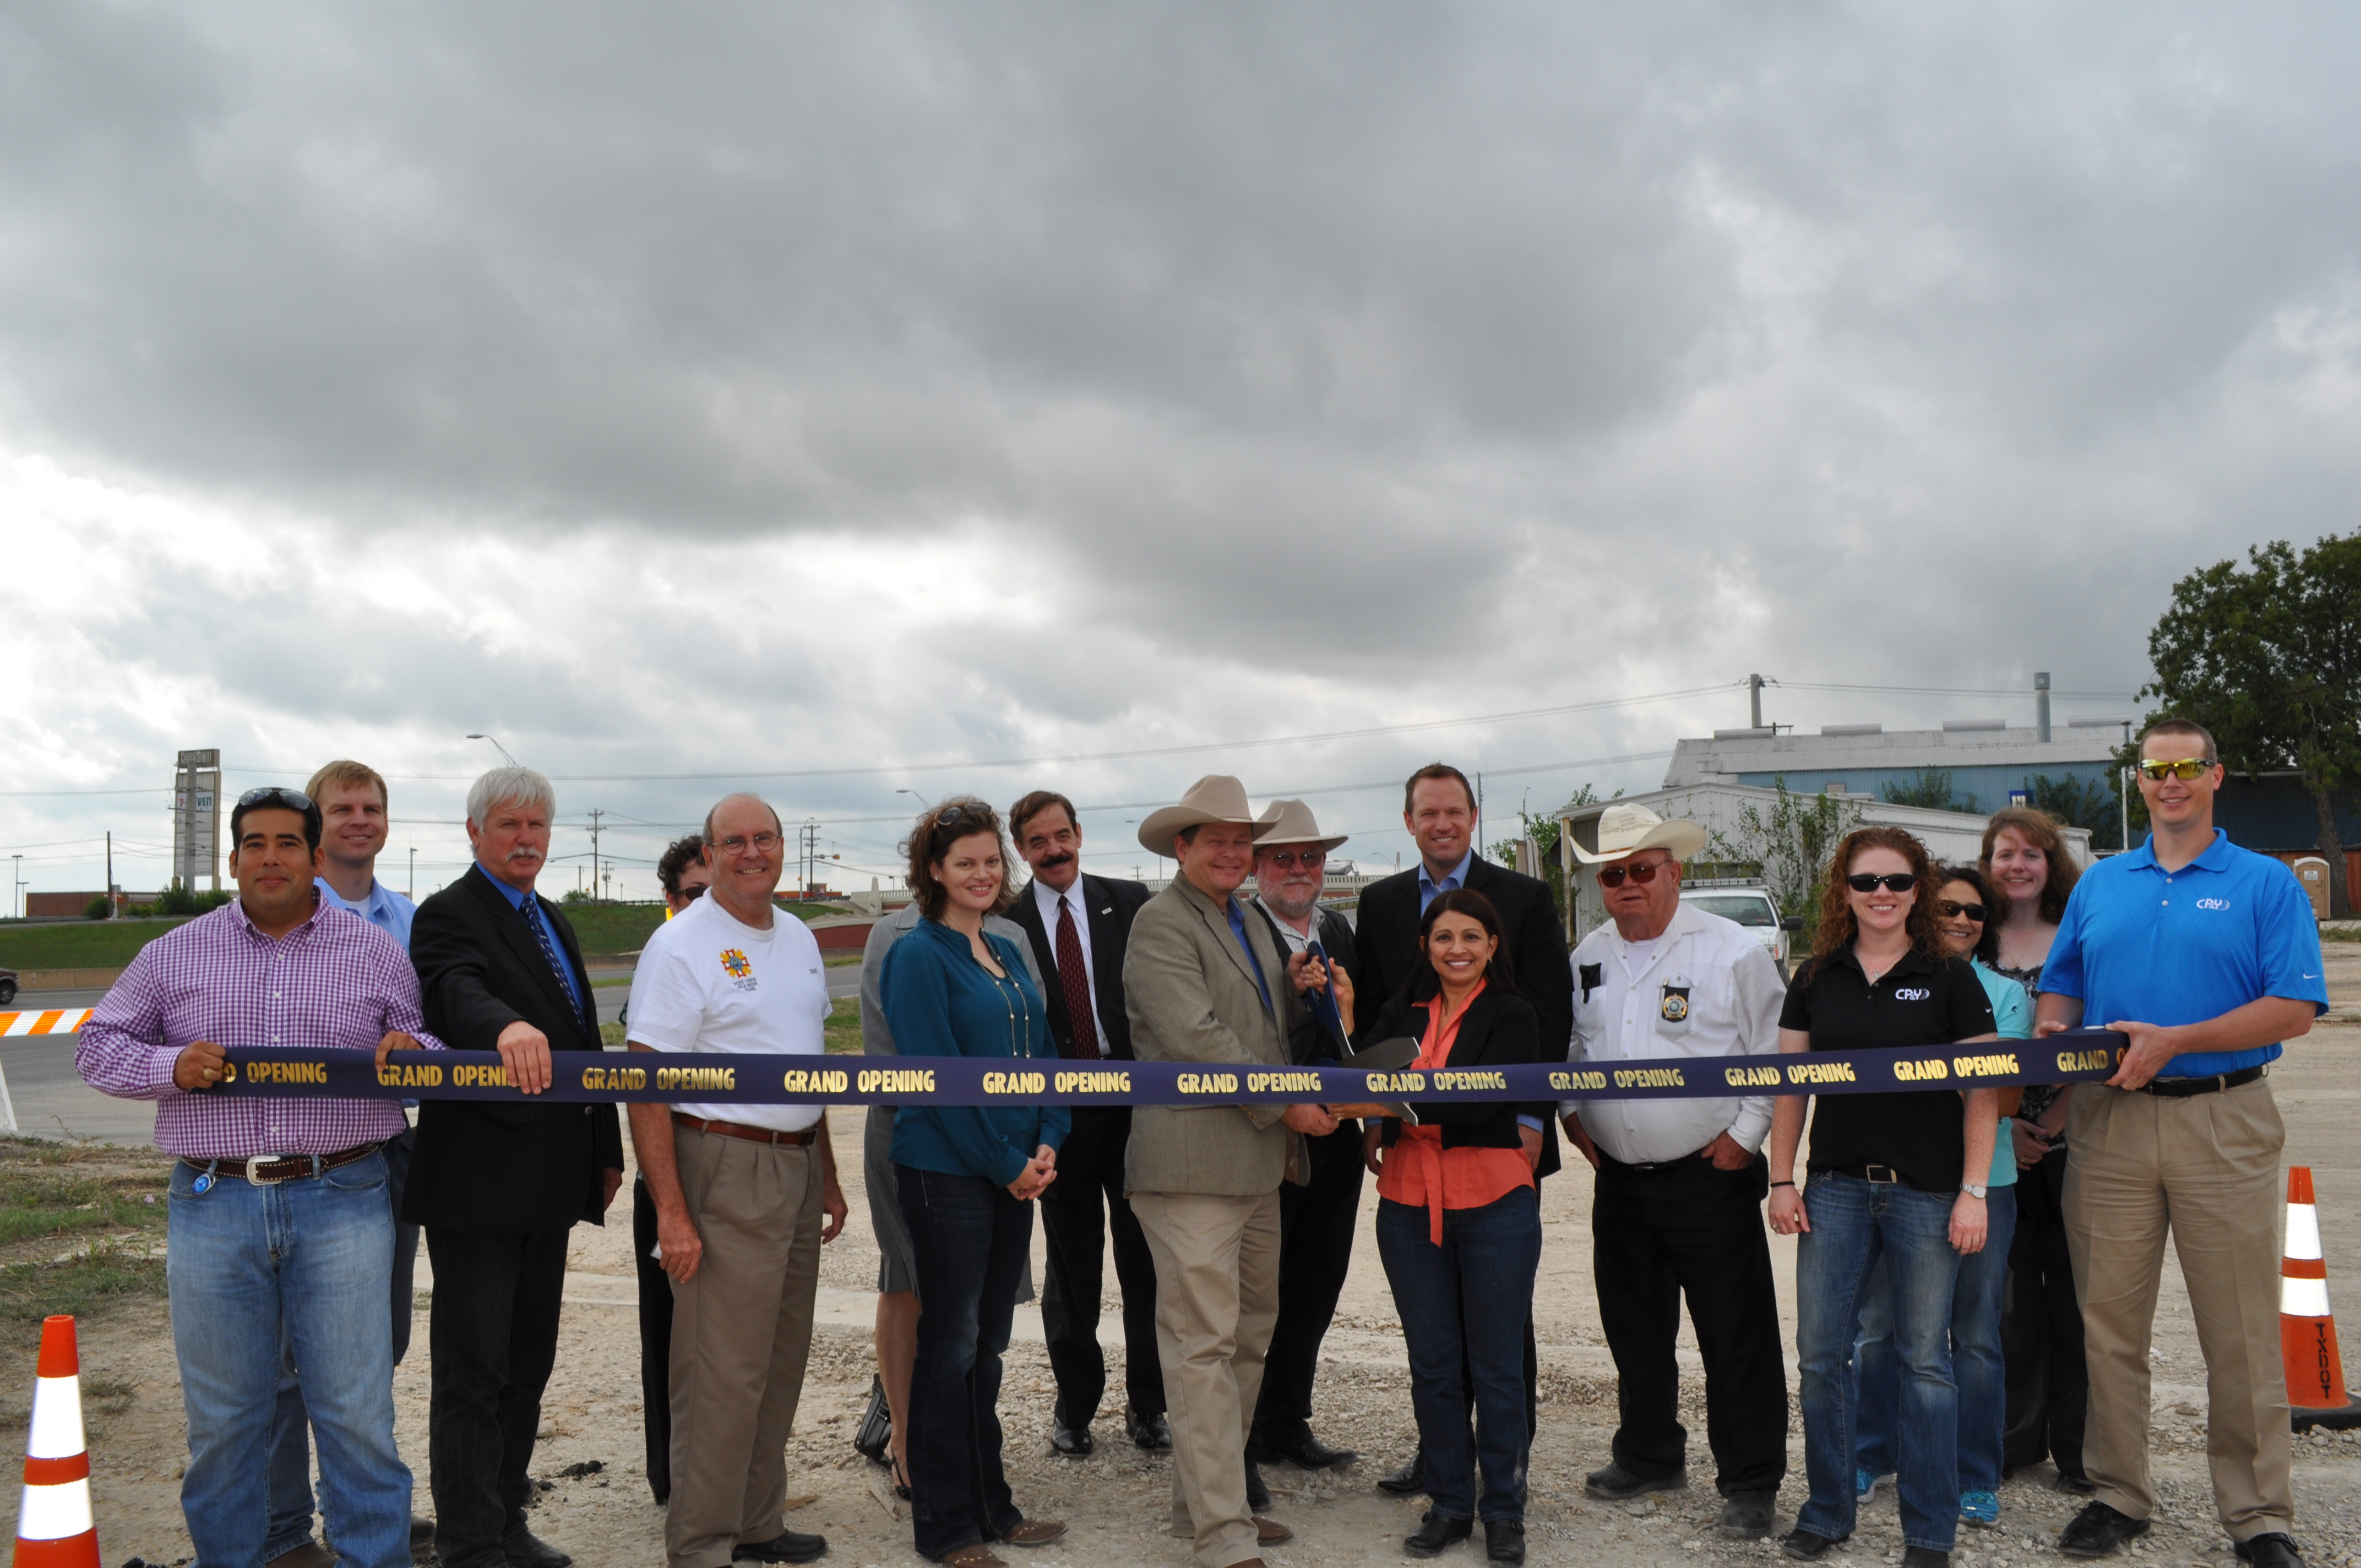 Interstate 35 Frontage Road & FM 150 Re-Alignment Project Ribbon Cutting